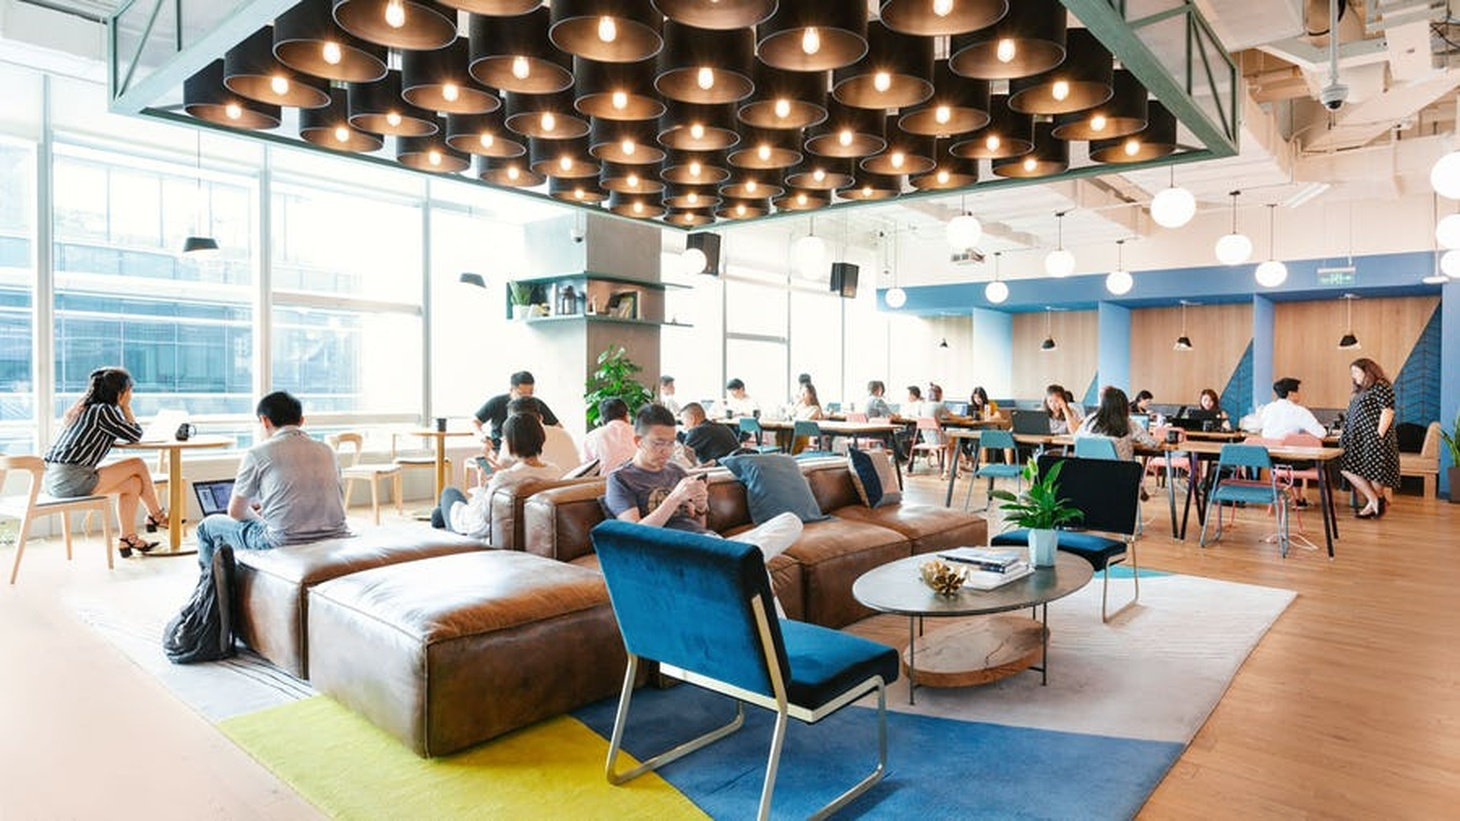 WeWork's coworking space The Maxwell is located in the former Maxwell House coffee warehouse in the Arts District.